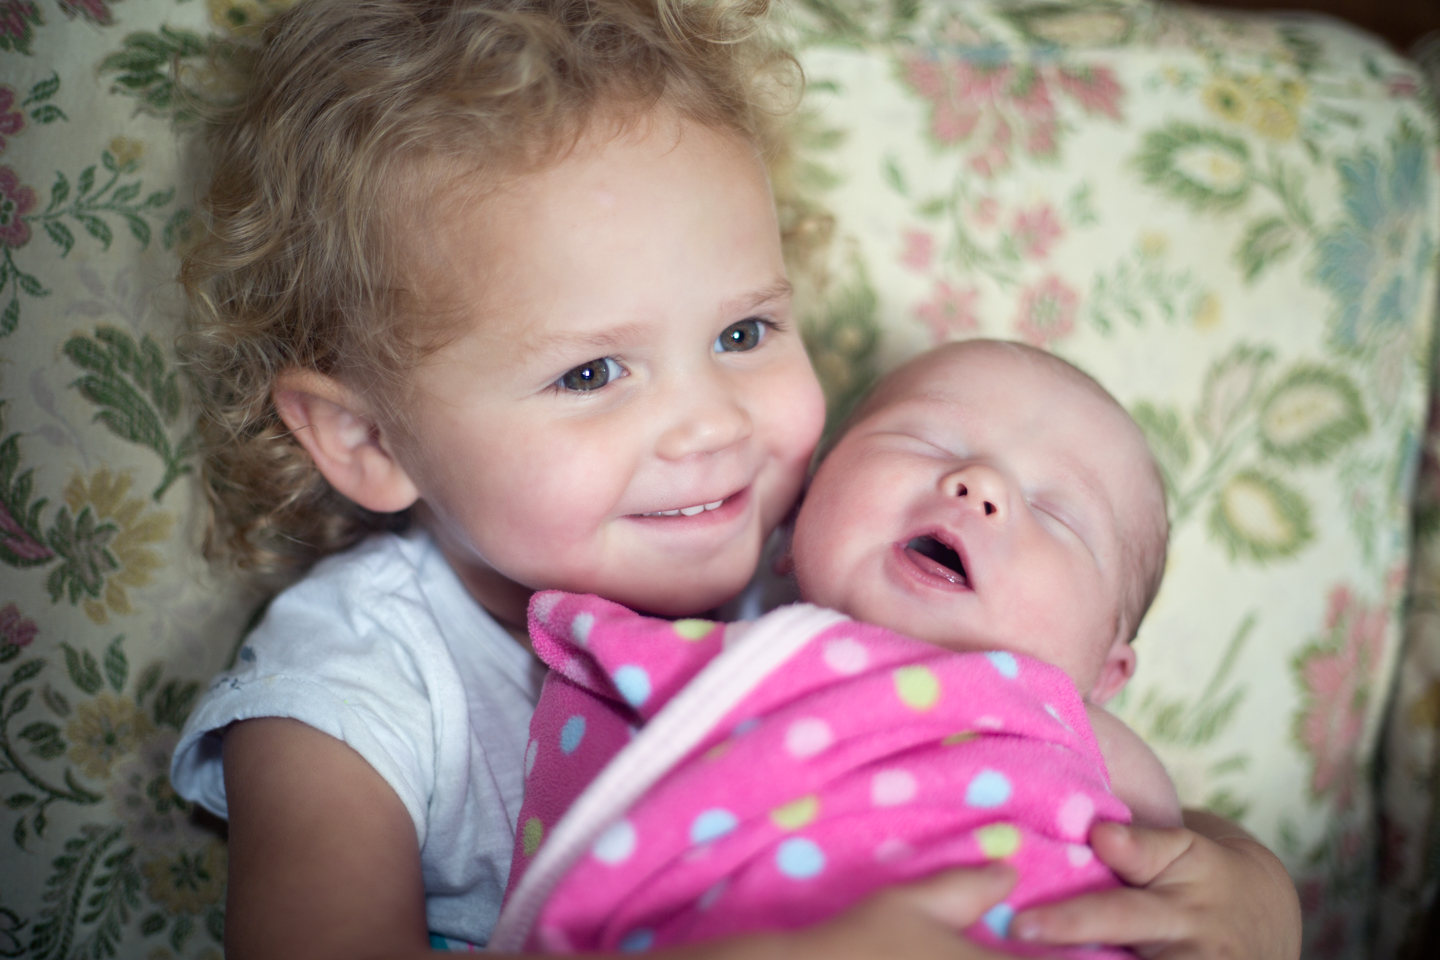 boston-photography-family-sisters-newborn-toddler.jpg